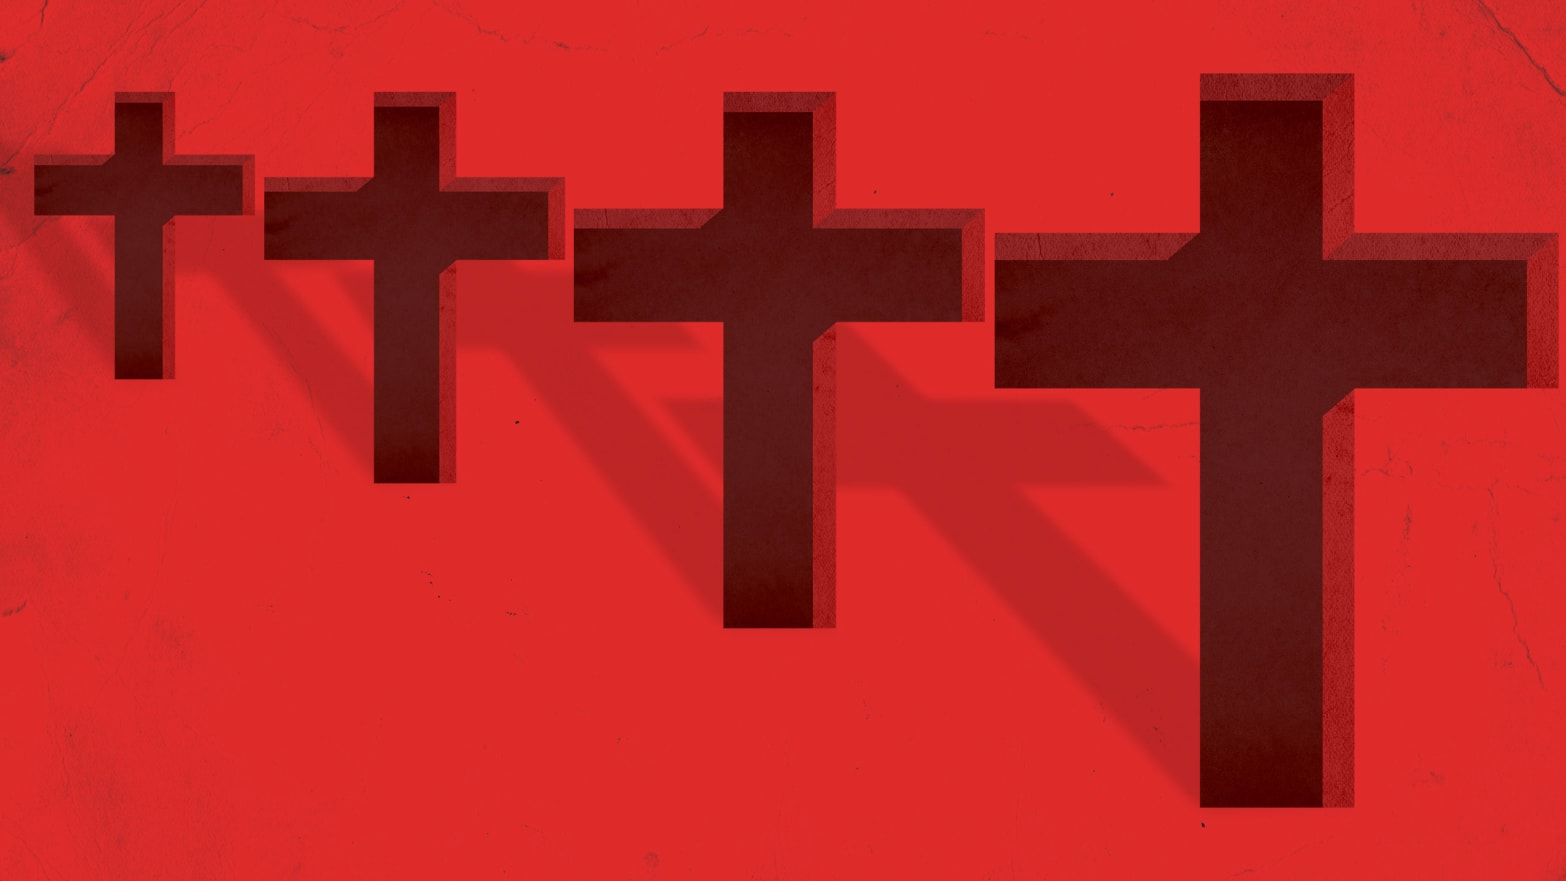 Blame Evangelicals for the Decline in Christian Faith